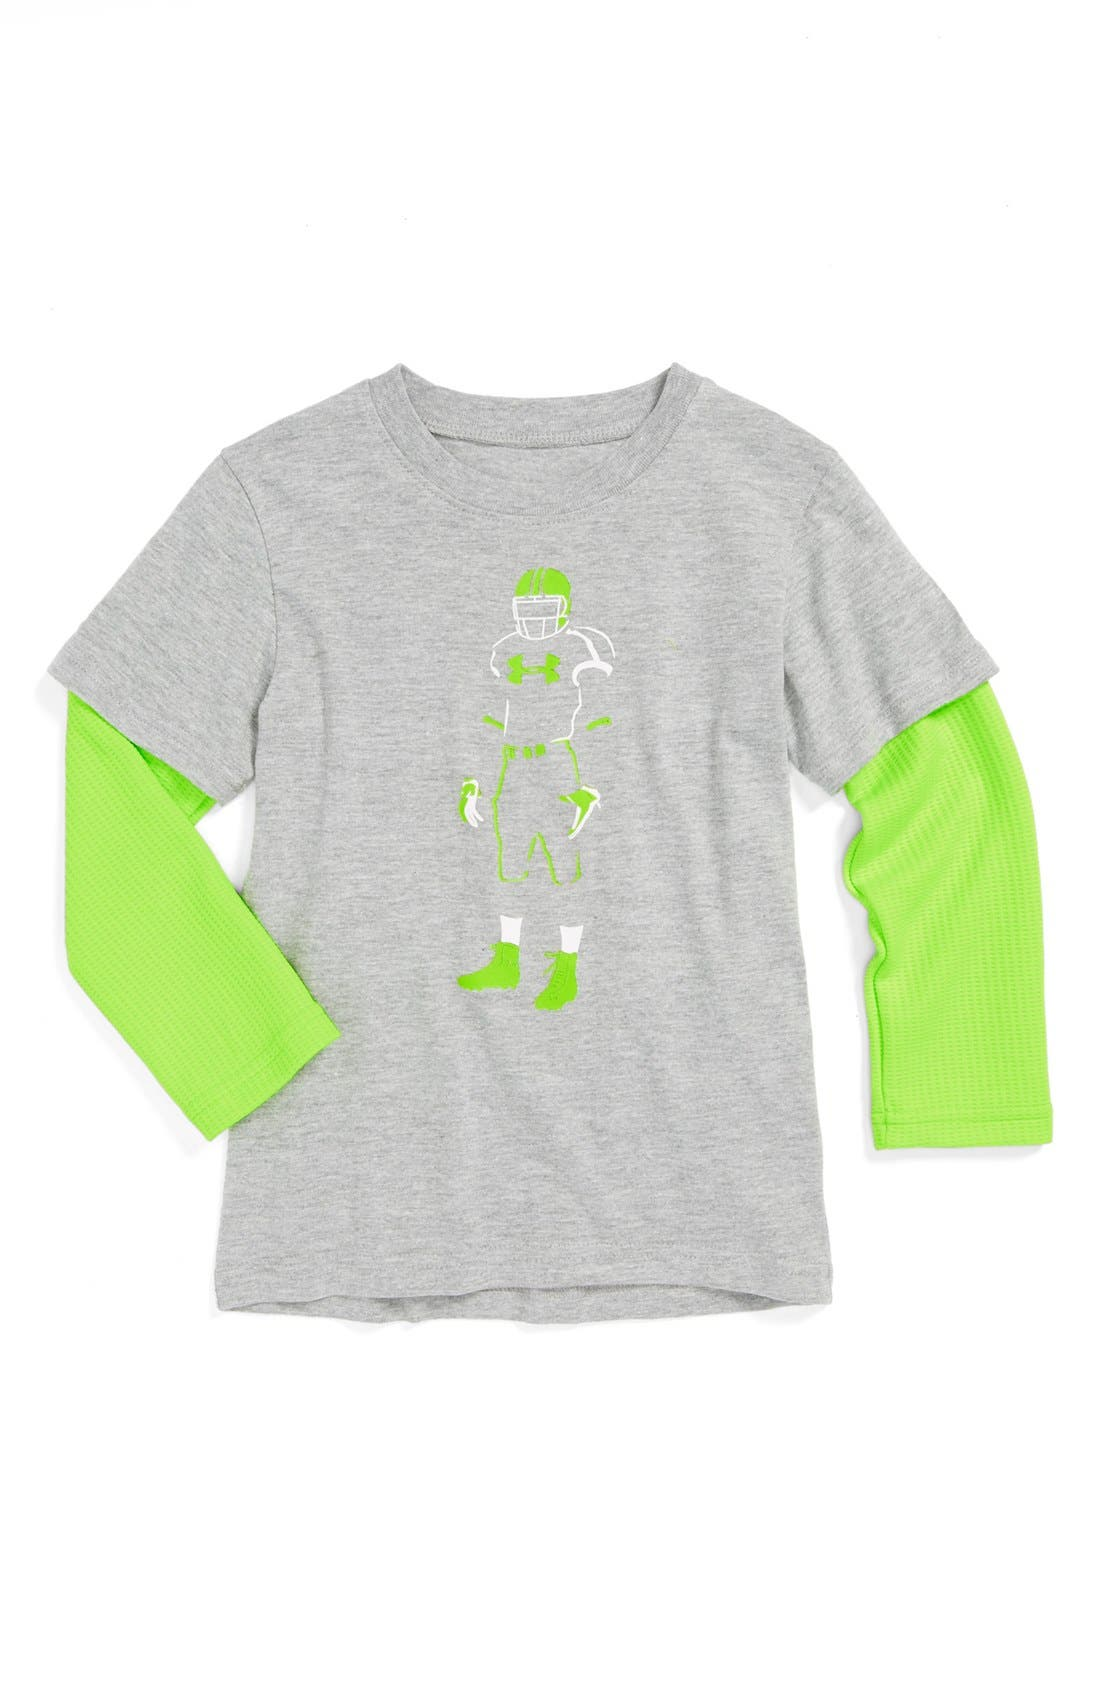 Alternate Image 1 Selected - Under Armour 'Football Glow Slider' AllSeasonGear® T-Shirt (Toddler Boys)